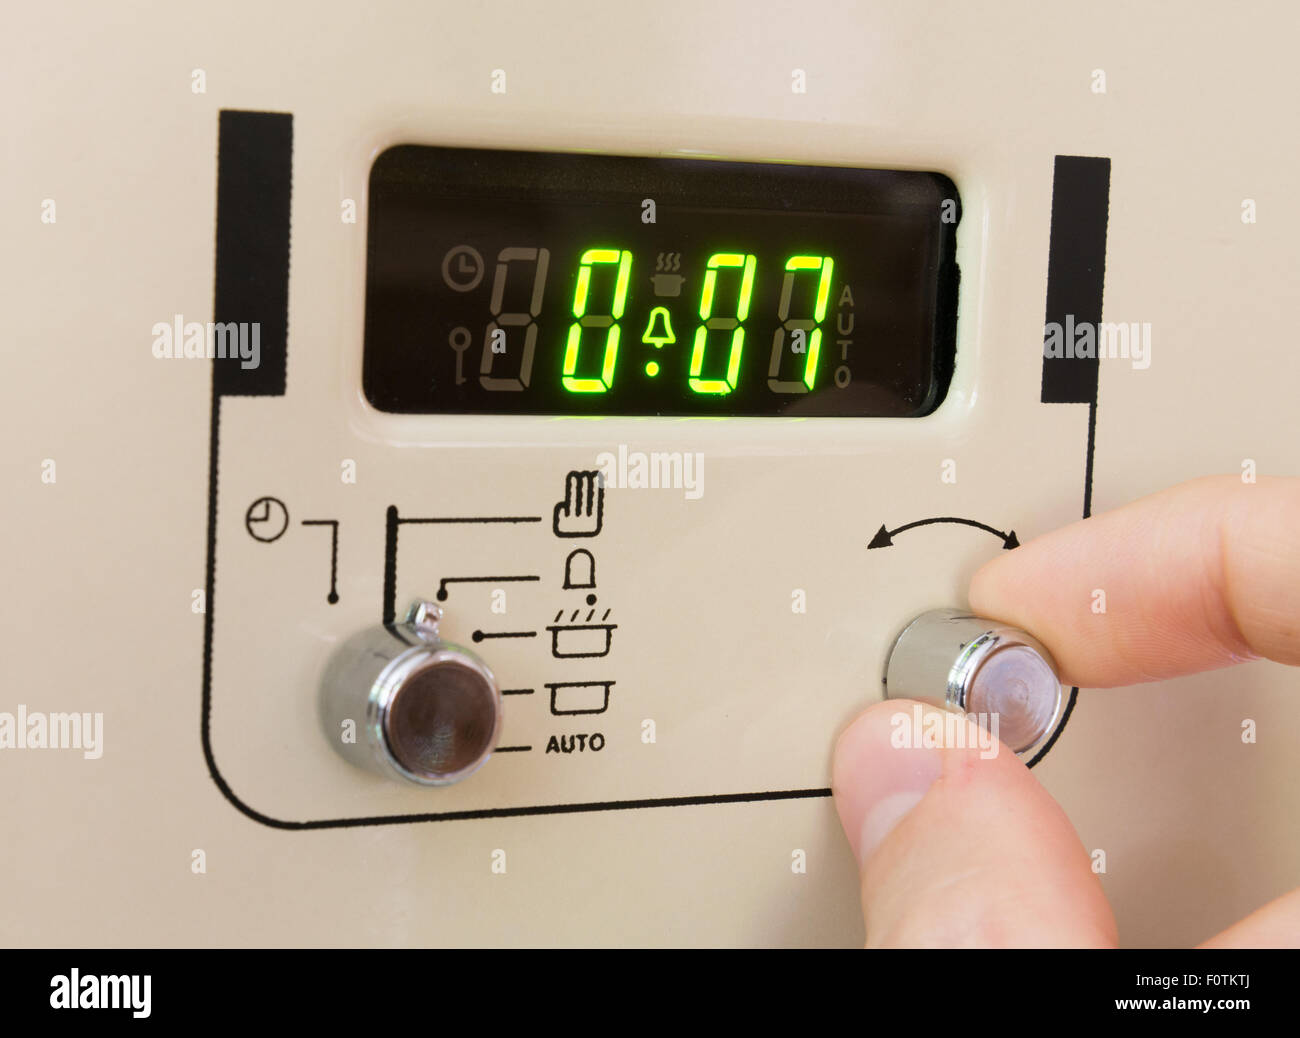 Setting a cooker timer to 7 minutes - Stock Image